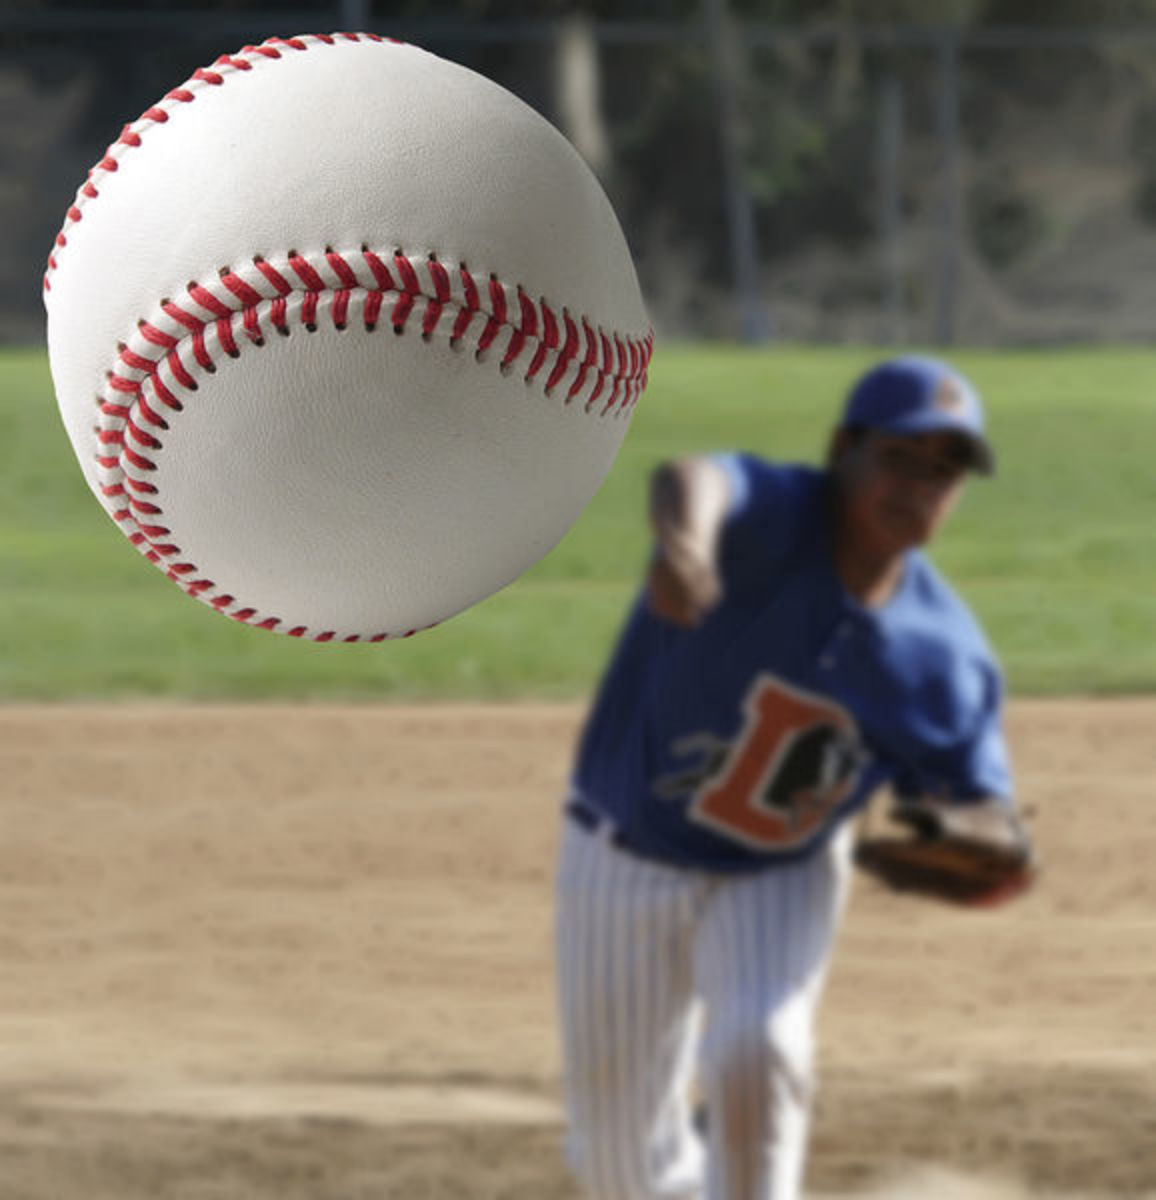 Throwing a Baseball From Any Position on the Field